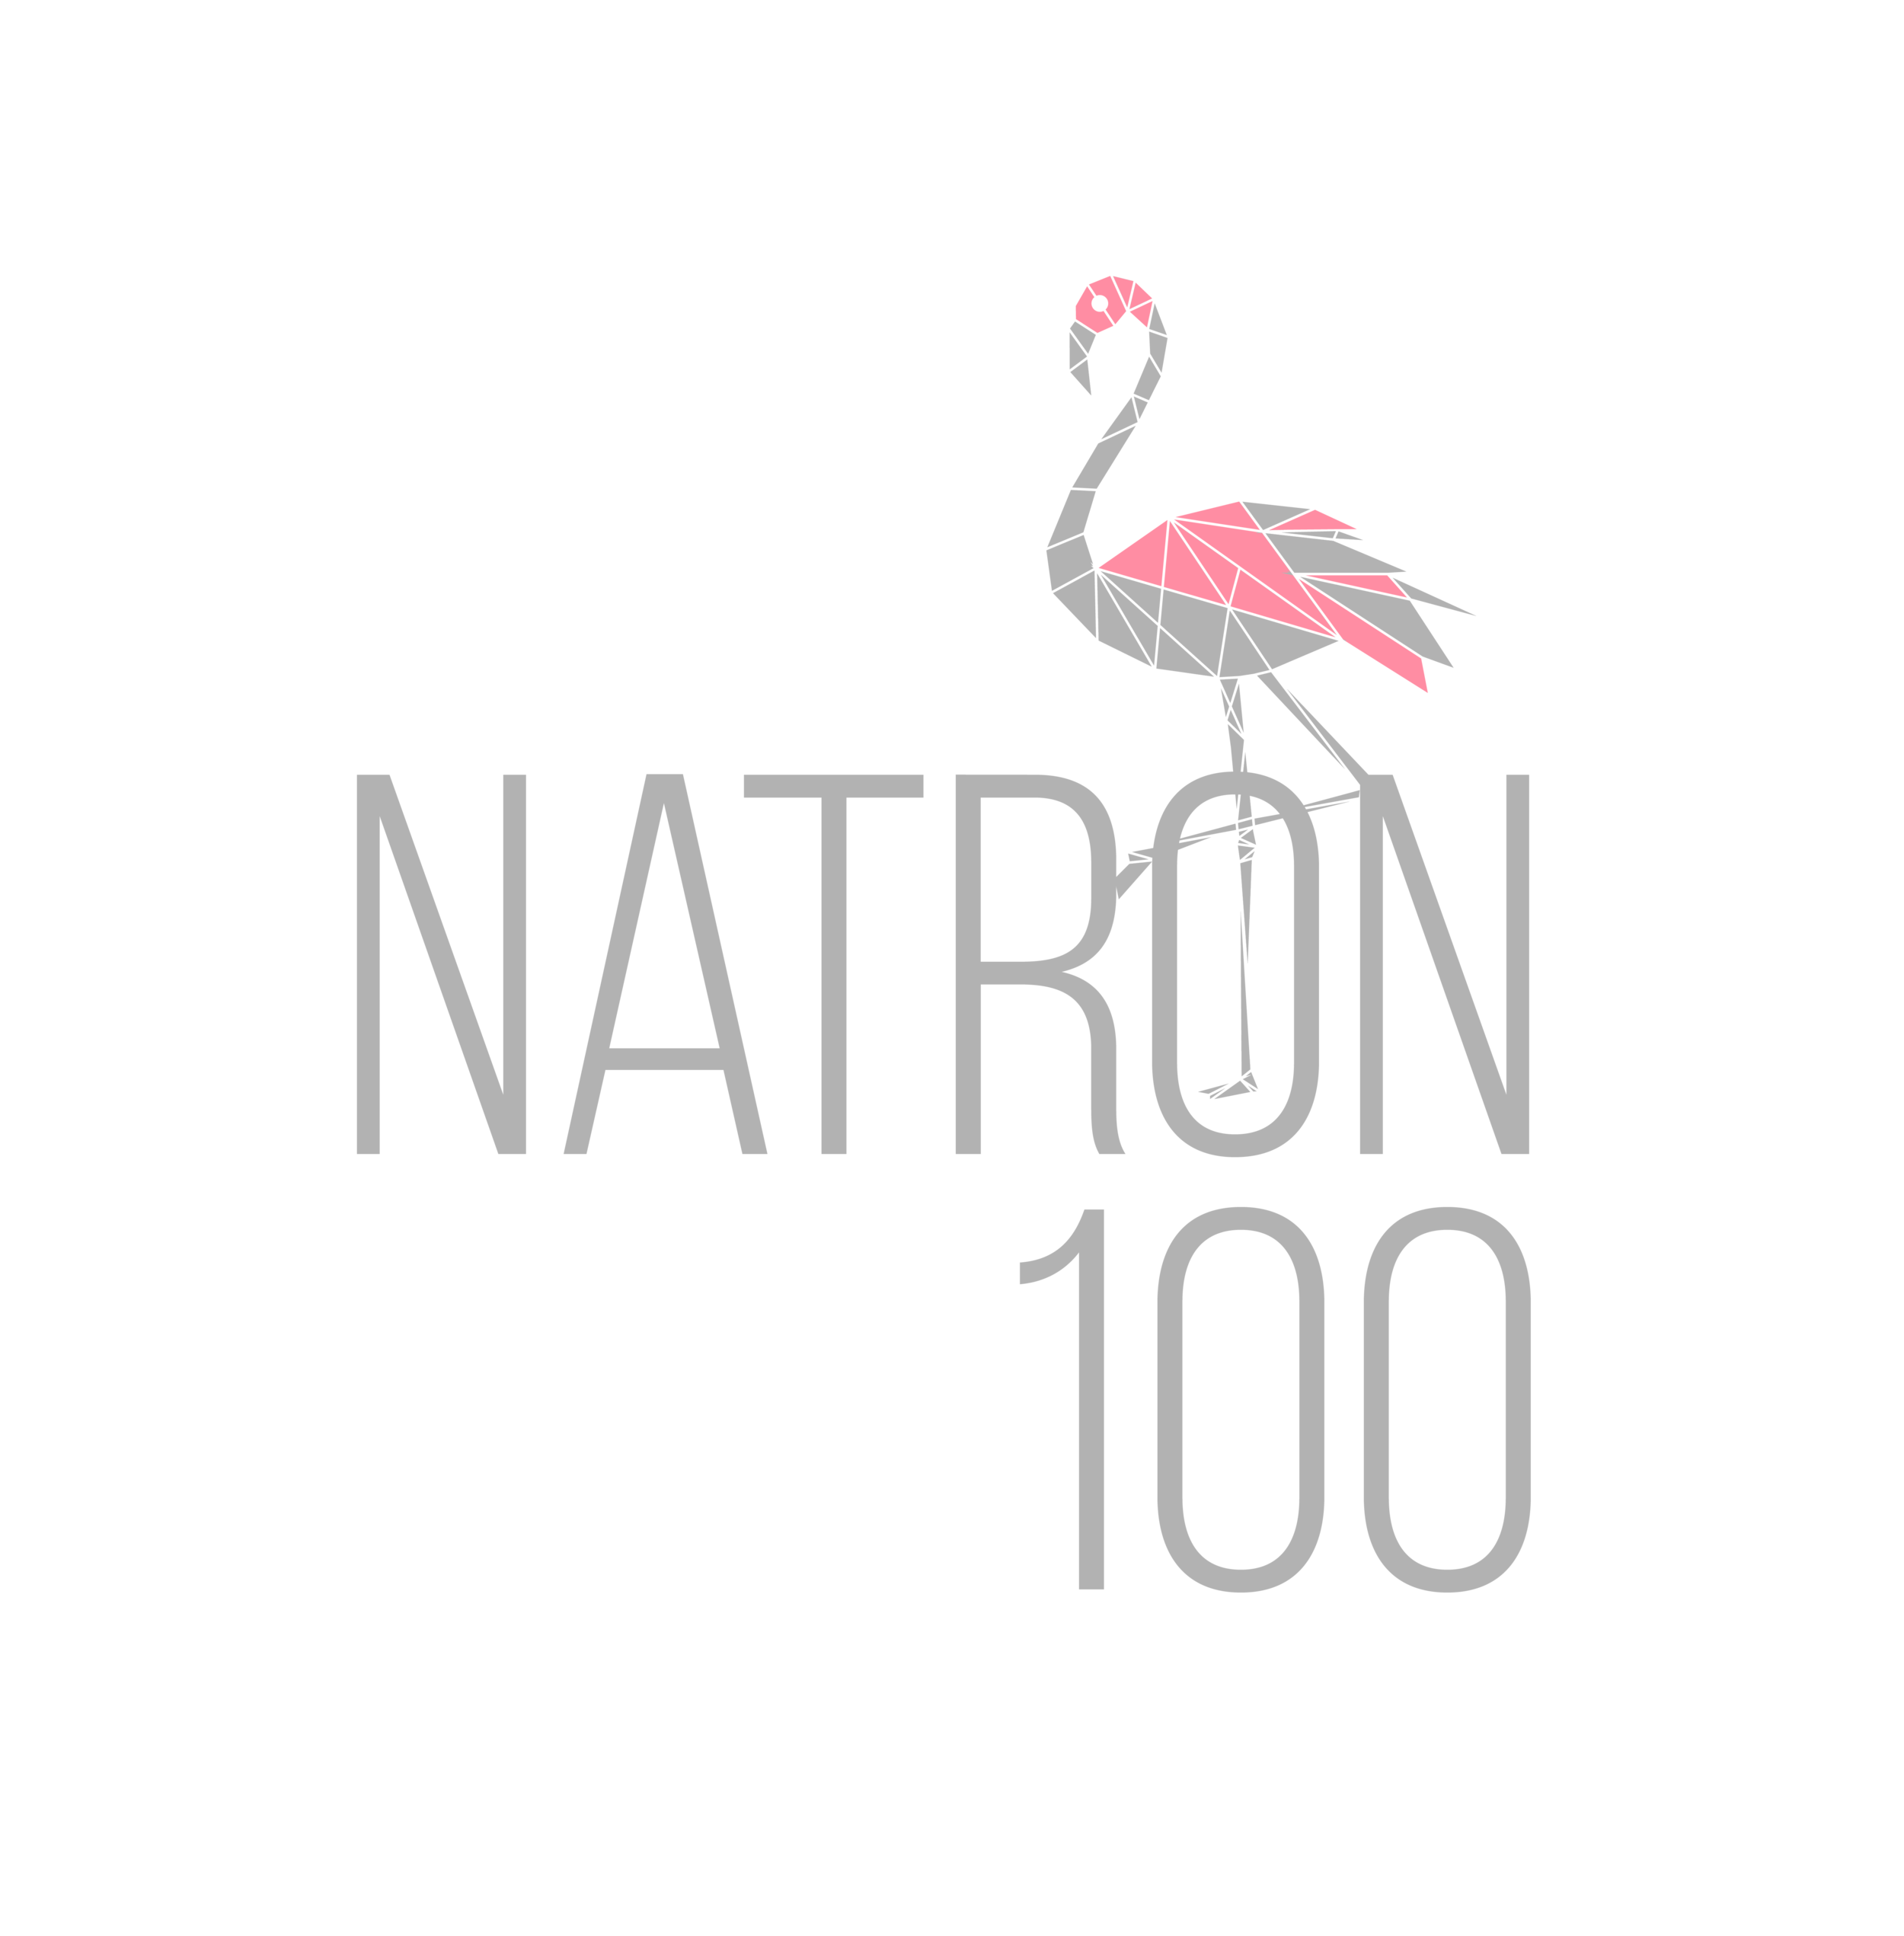 Beats, Dance, Adventure, heat! - The first festival was held in 2016 and was held at Lake Natron camp, Ngare Sero. It is called Natron 100 because we sell only 100 tickets. We like to keep it micro to have a low impact and eco friendly festival to protect and preserve the area.